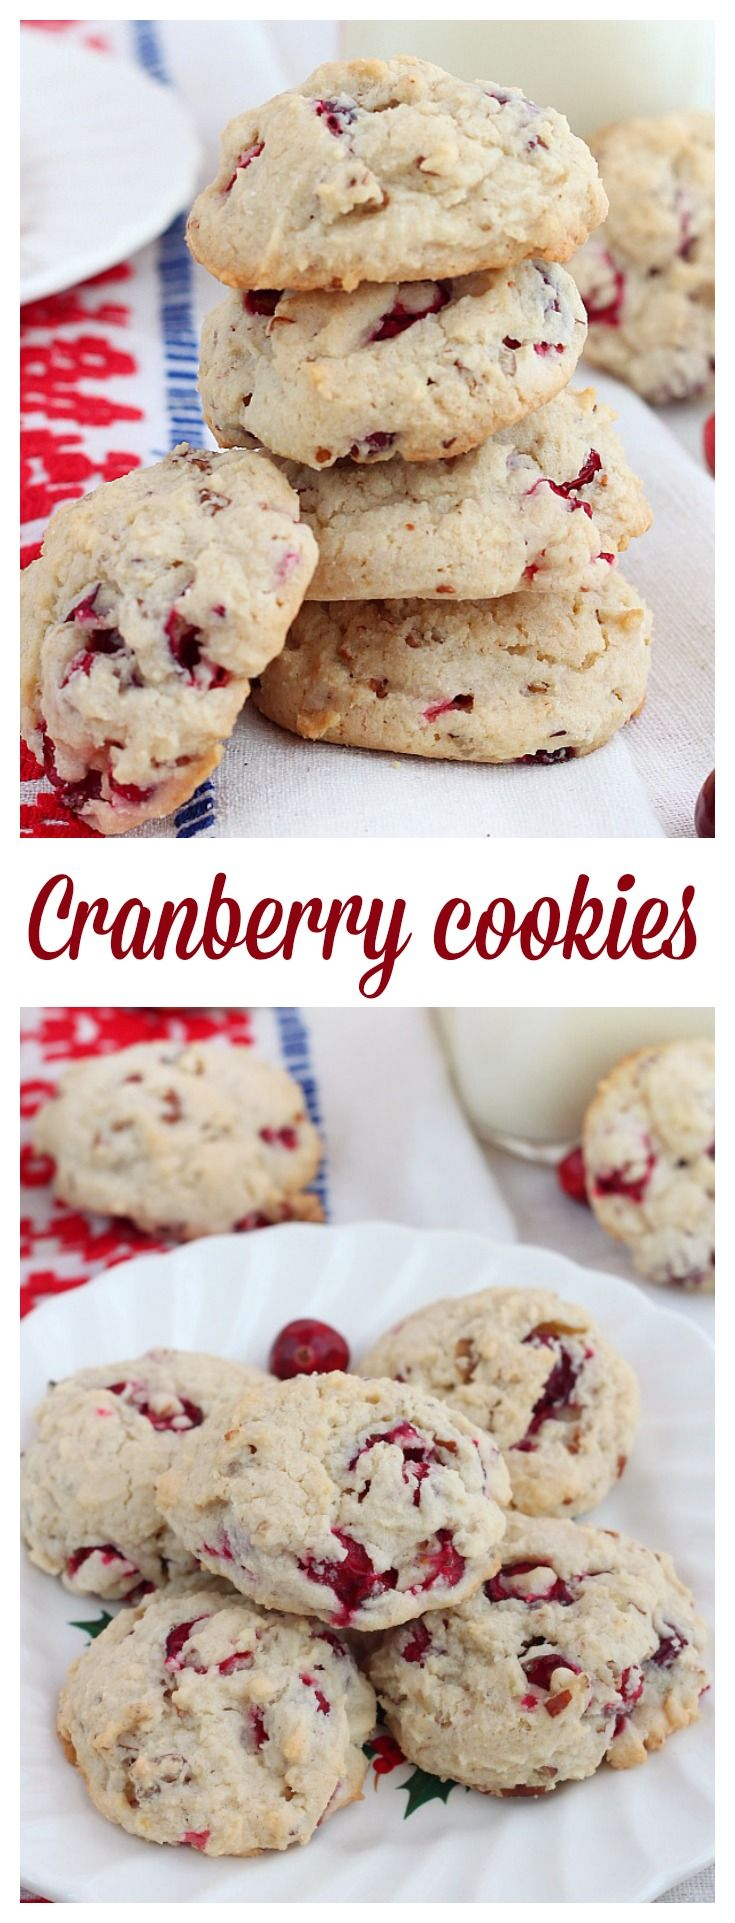 Sweet and soft, these nutty cranberry cookies are a family favorite. Make them for friends and family, for your next cookie exchange or bake and freeze getting them out when the cravings strike.